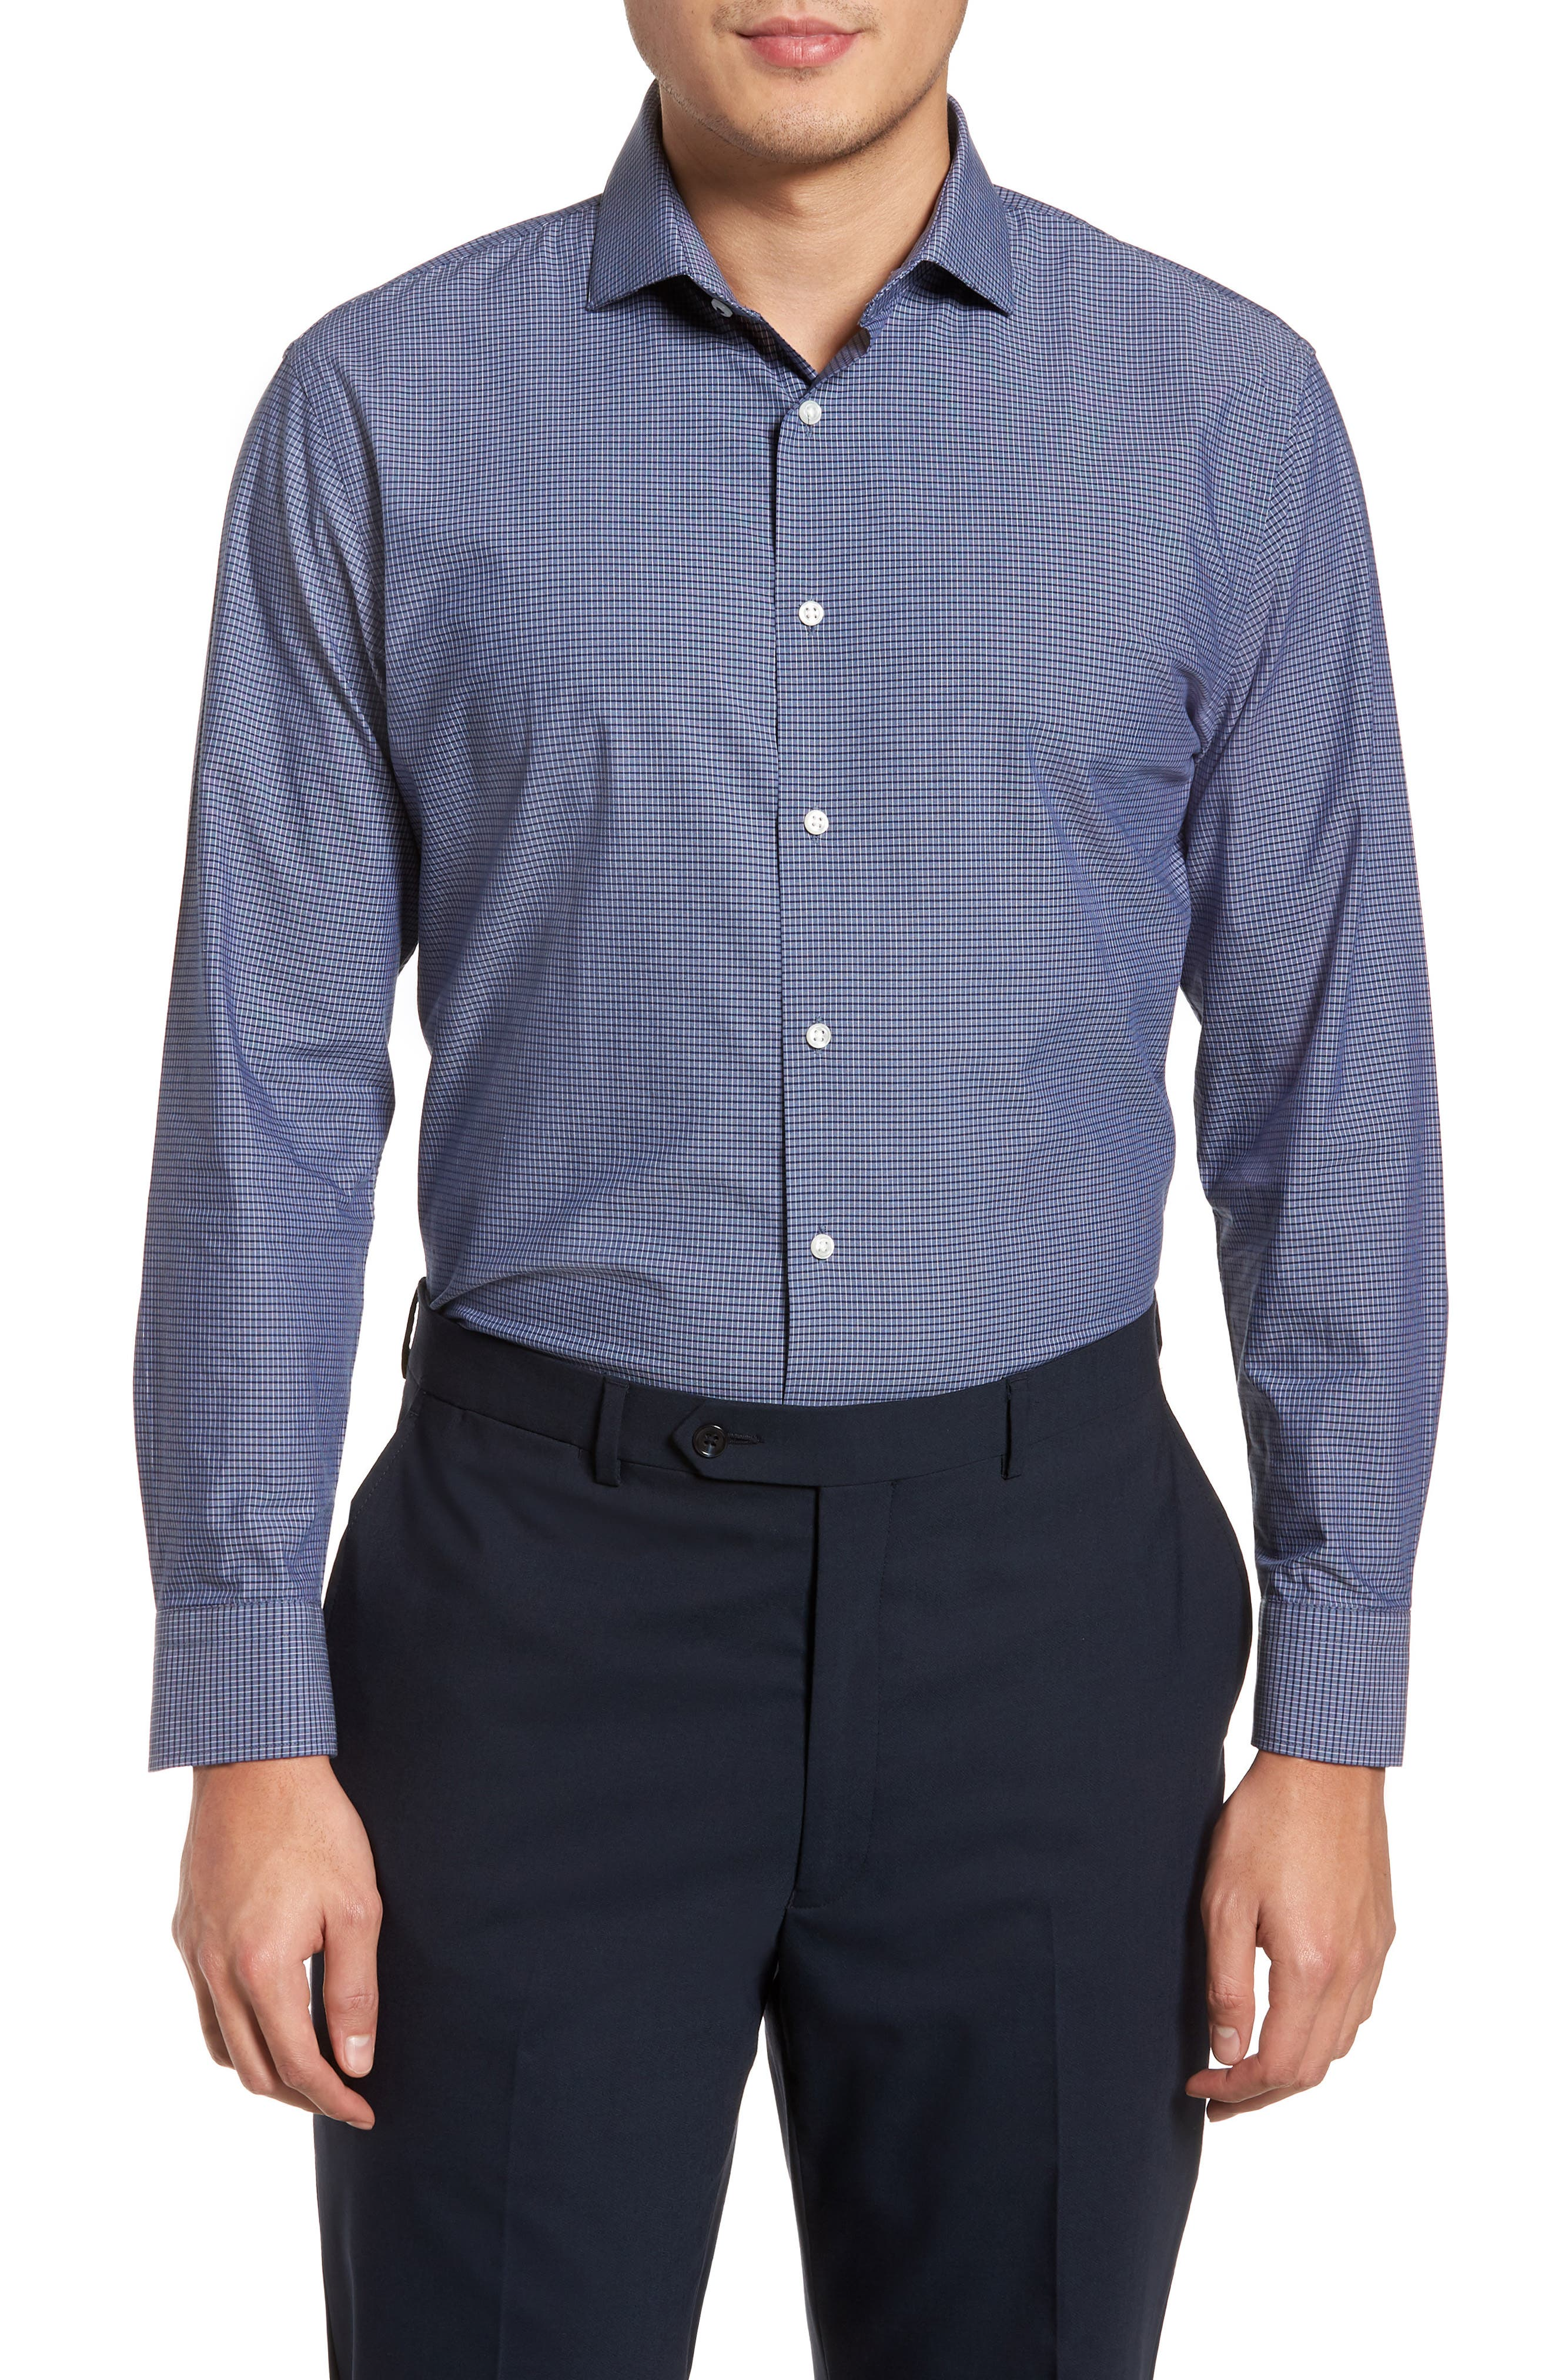 Alternate Image 1 Selected - Nordstrom Men's Shop Tech-Smart Trim Fit Stretch Check Dress Shirt